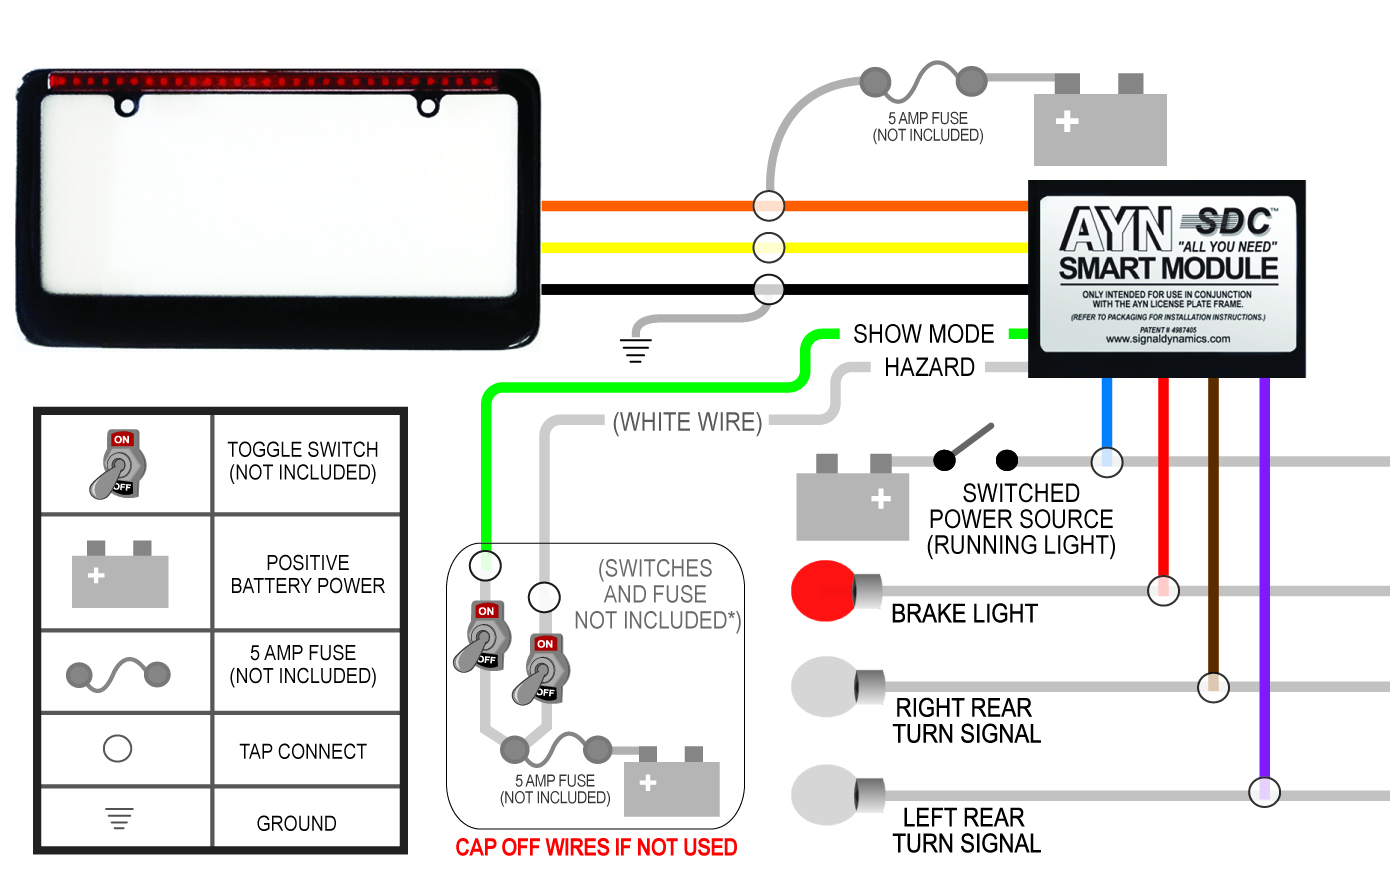 hazard wiring diagram for motorcycle hazard image motorcycle turn signal wiring diagram motorcycle auto wiring on hazard wiring diagram for motorcycle